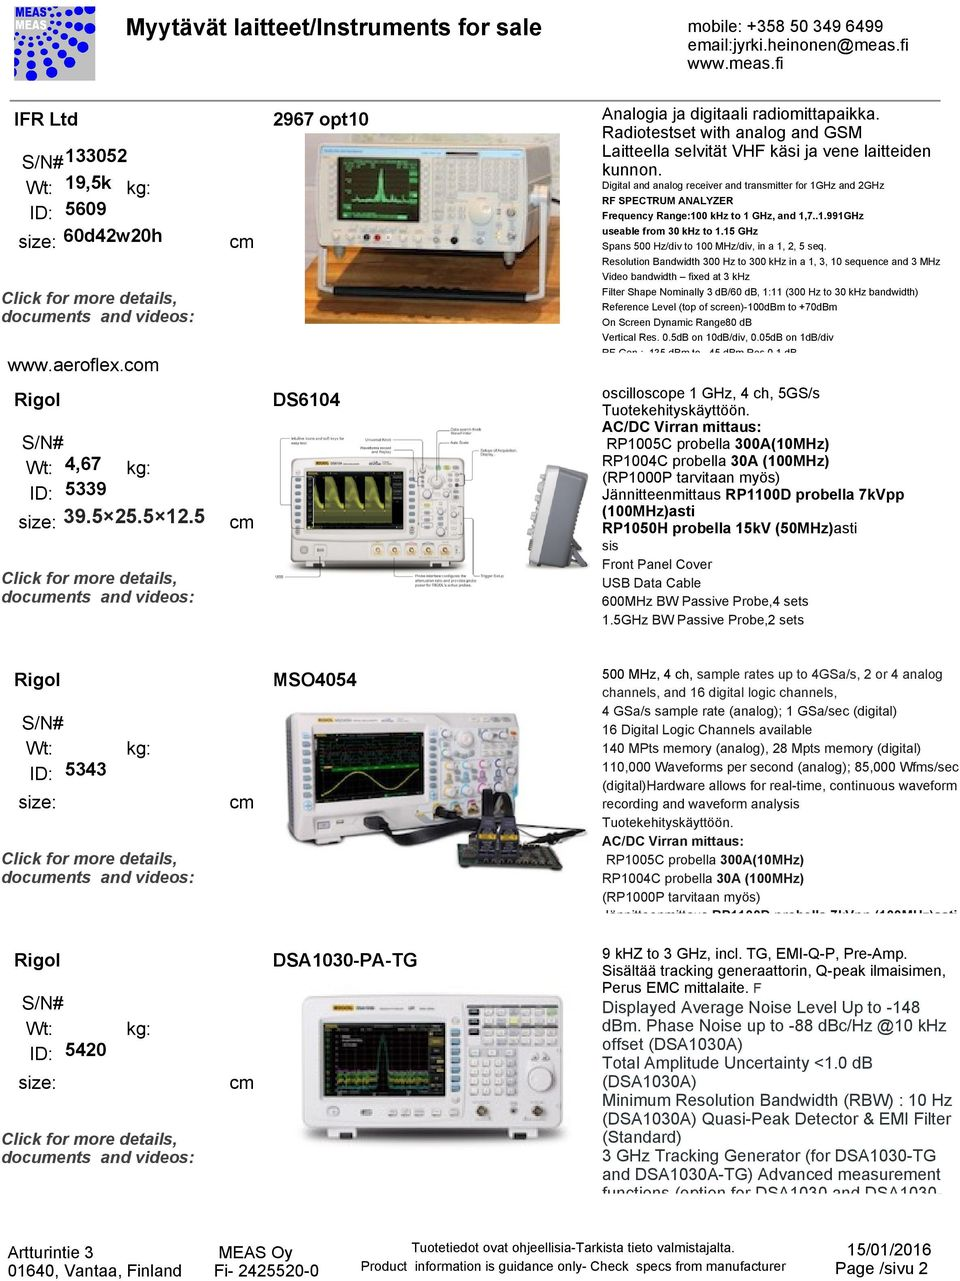 Myytvt Laitteet Instruments For Sale Mobile Pdf Audio Spectrum Analyzer Circuit Led 03 120x120 Digital And Analog Receiver Transmitter 1ghz 2ghz Rf Frequency Range